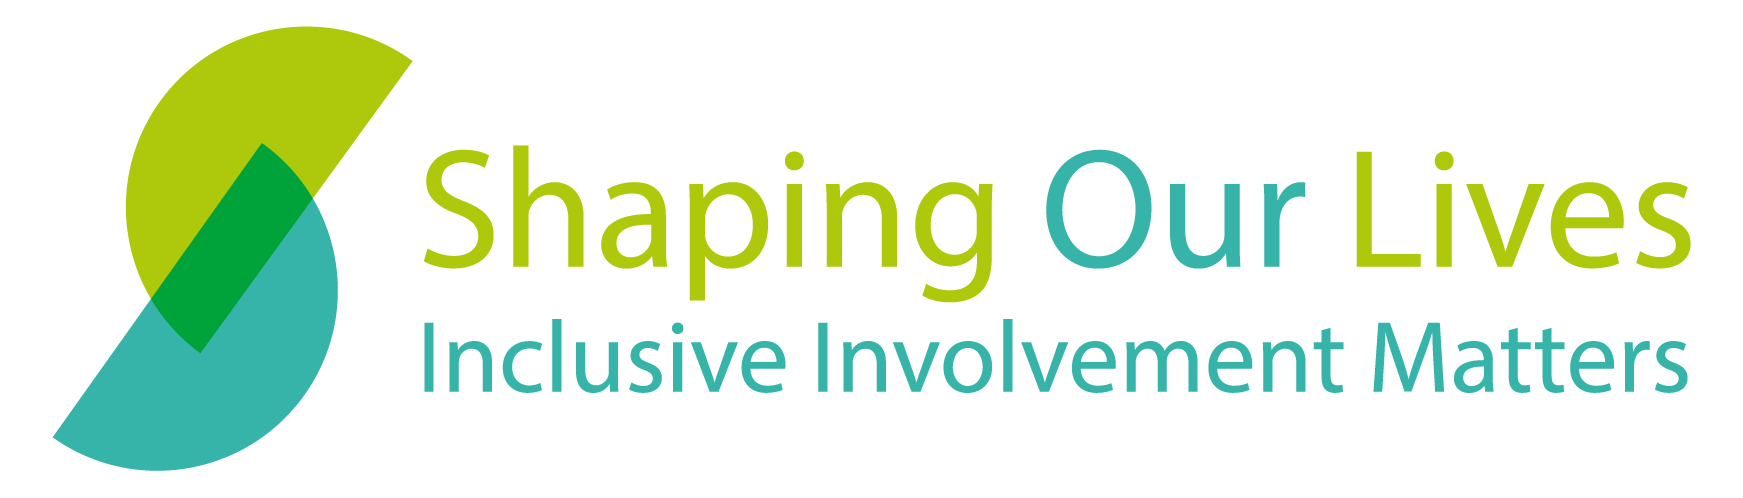 Shaping Our Lives - Inclusive Involvement Matters